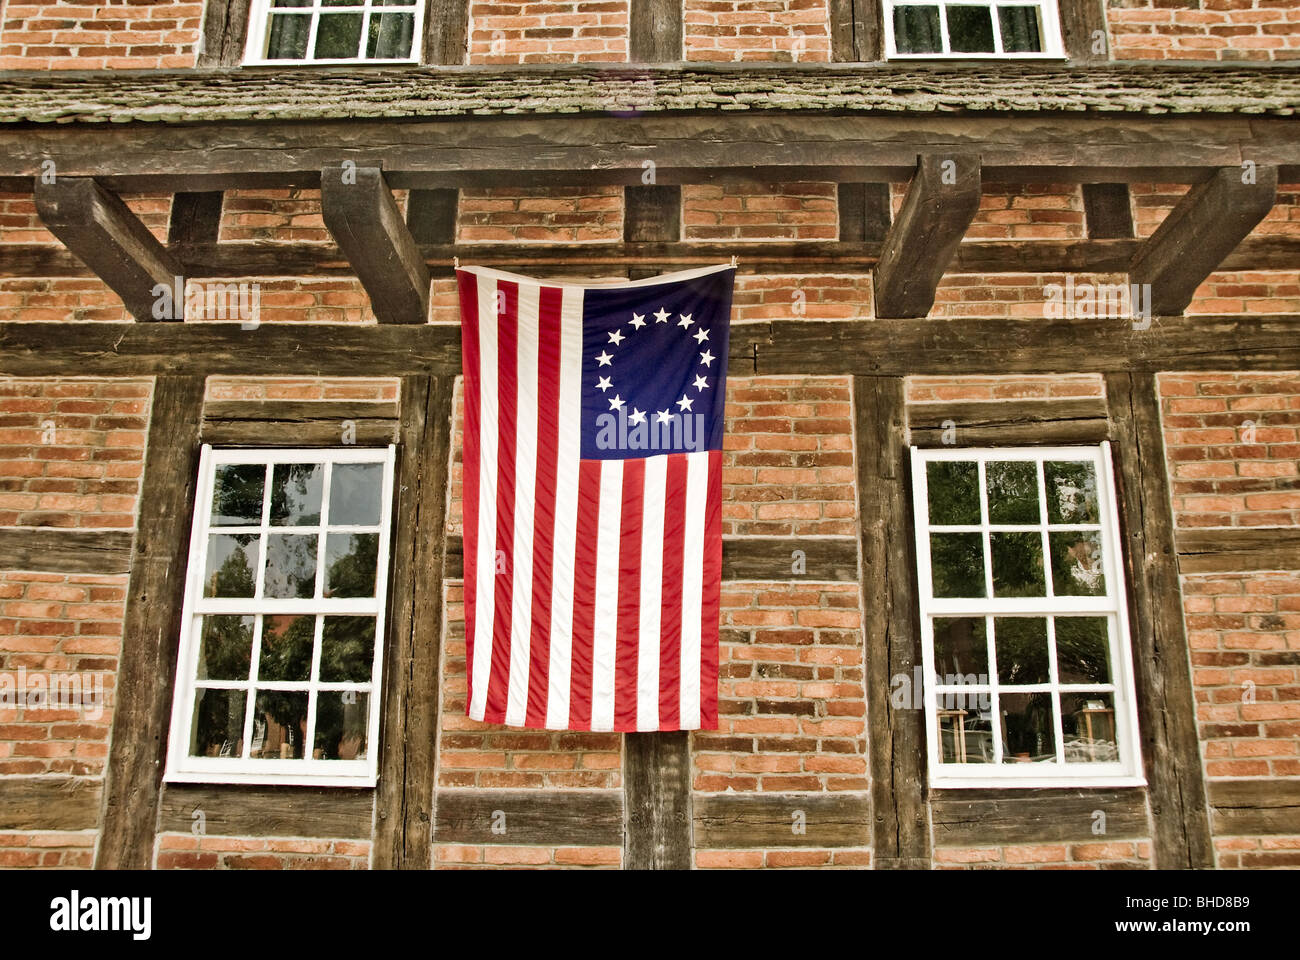 Betsy Ross Flag Stock Photos and Images